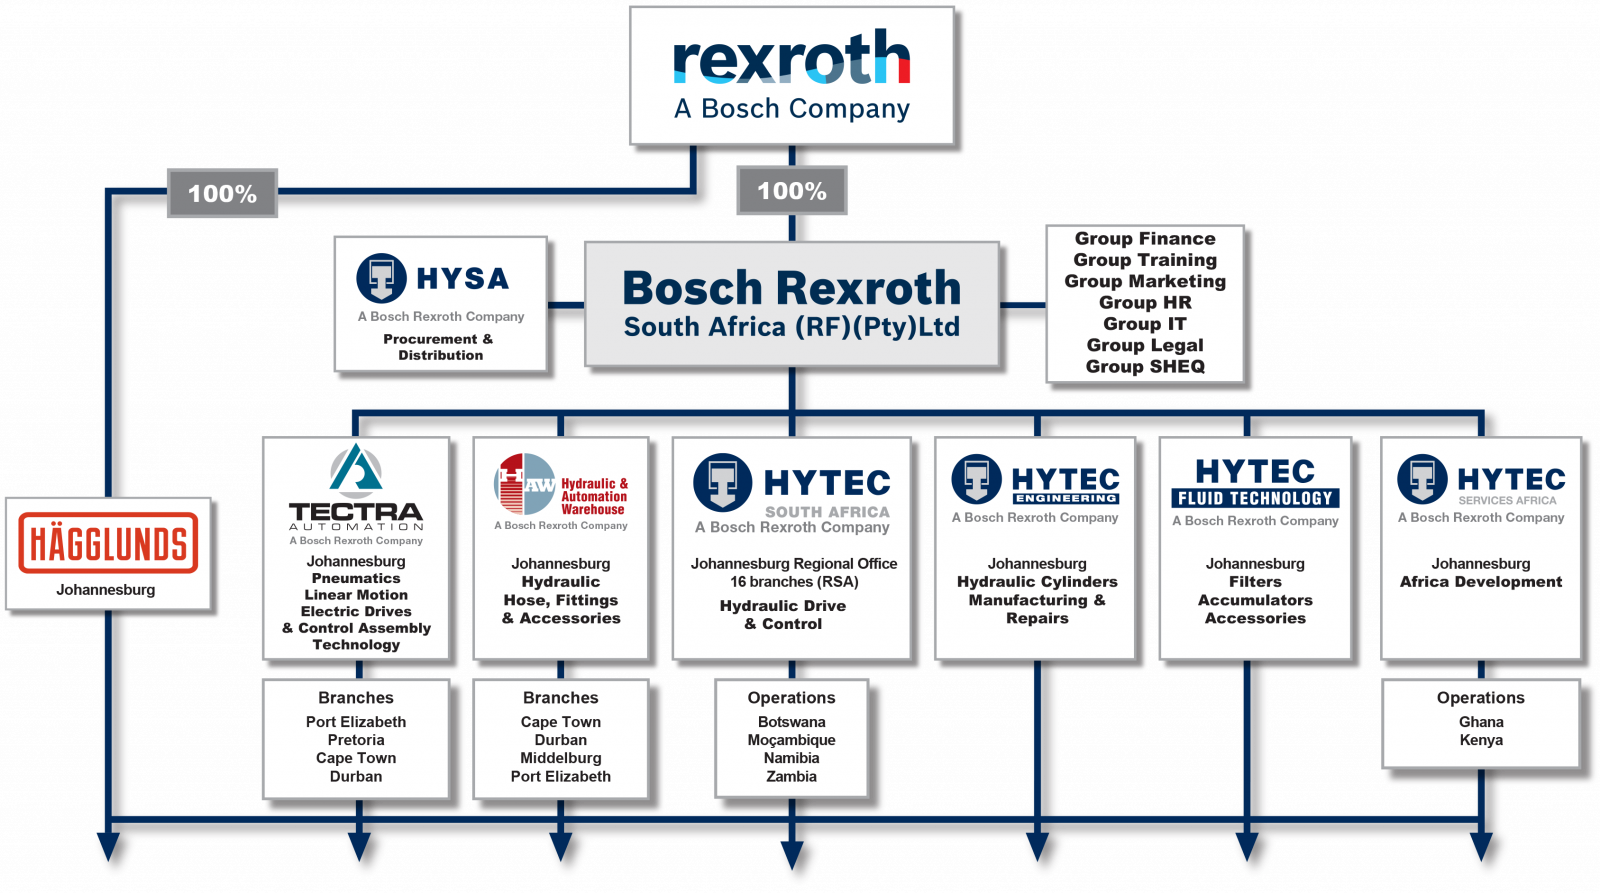 Bosch Rexroth South Africa Group - Code of Ethics and Business Conduct